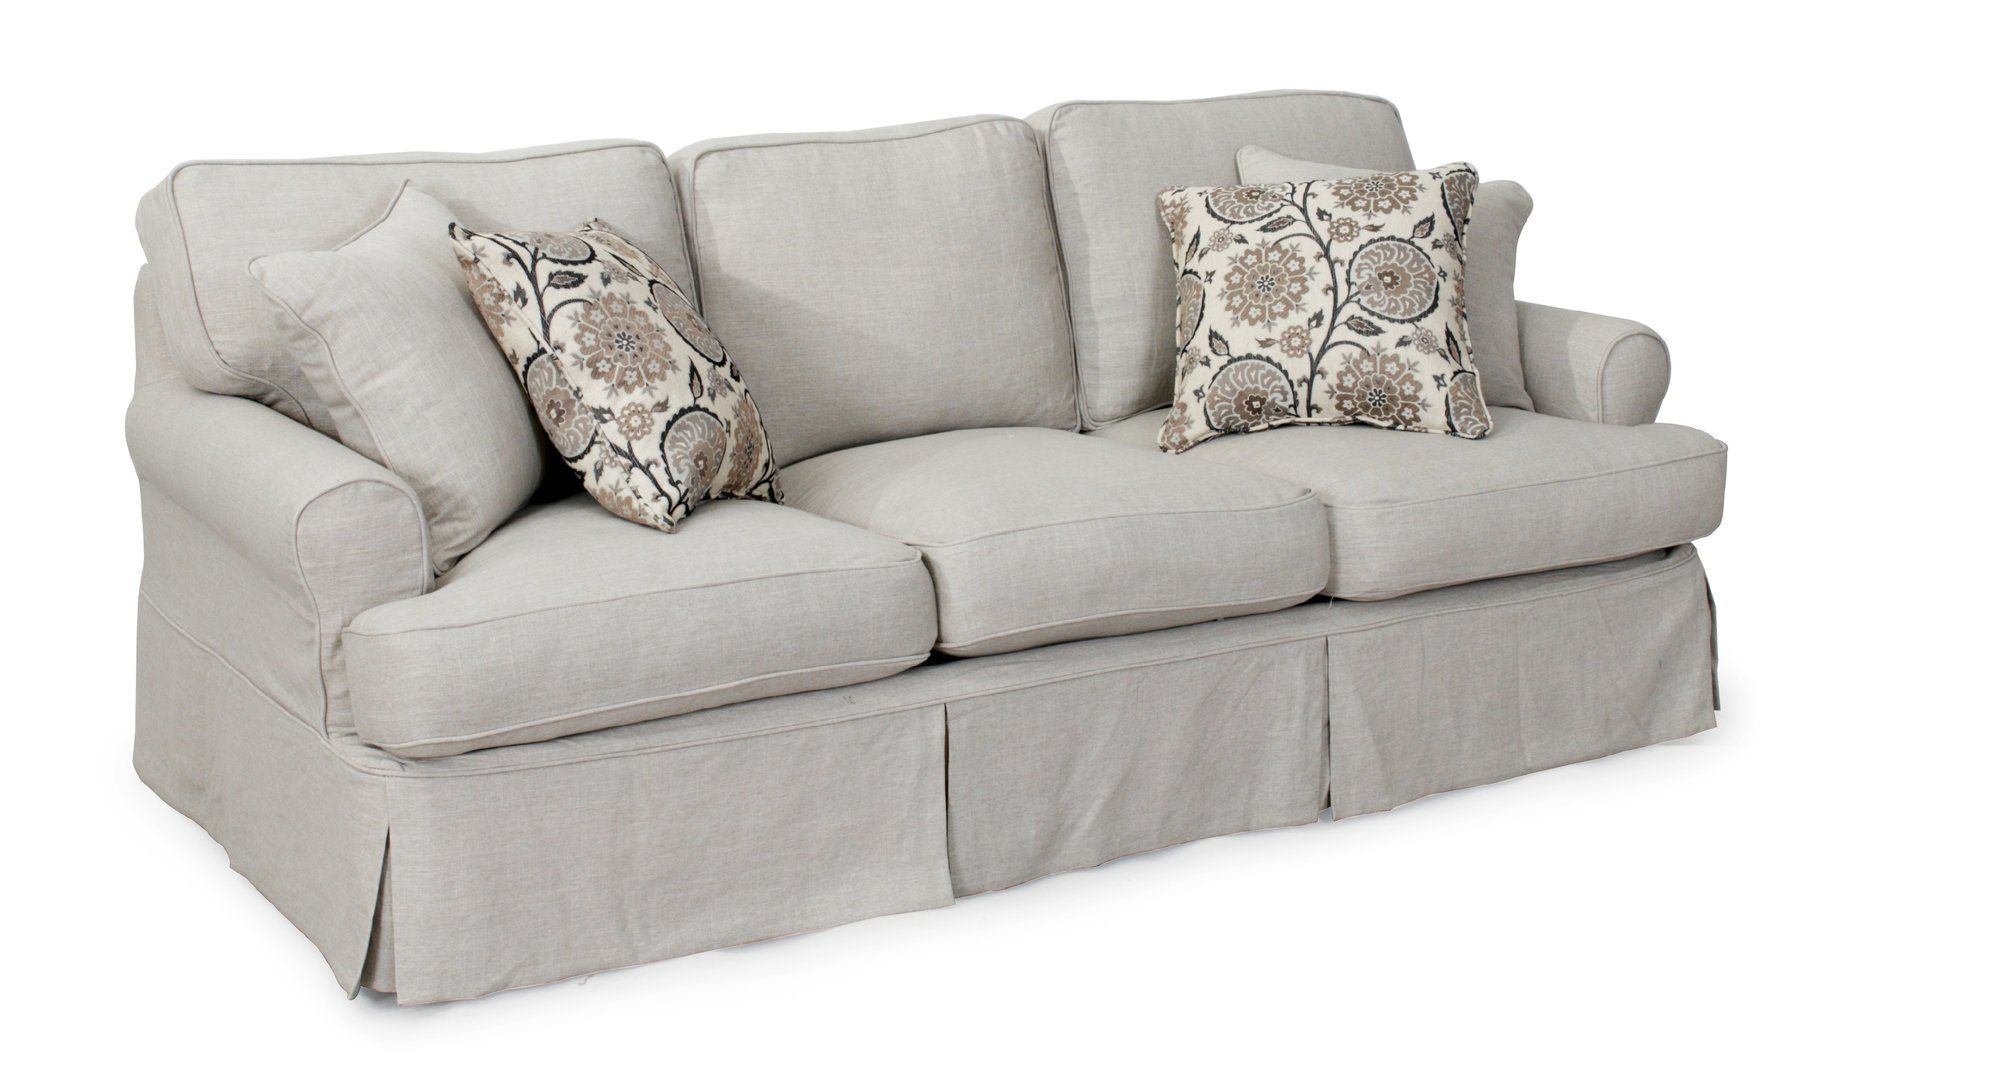 Callie Sofa T Cushion Slipcover Set | Products | Pinterest | Sofa Intended For Callie Sofa Chairs (View 13 of 25)